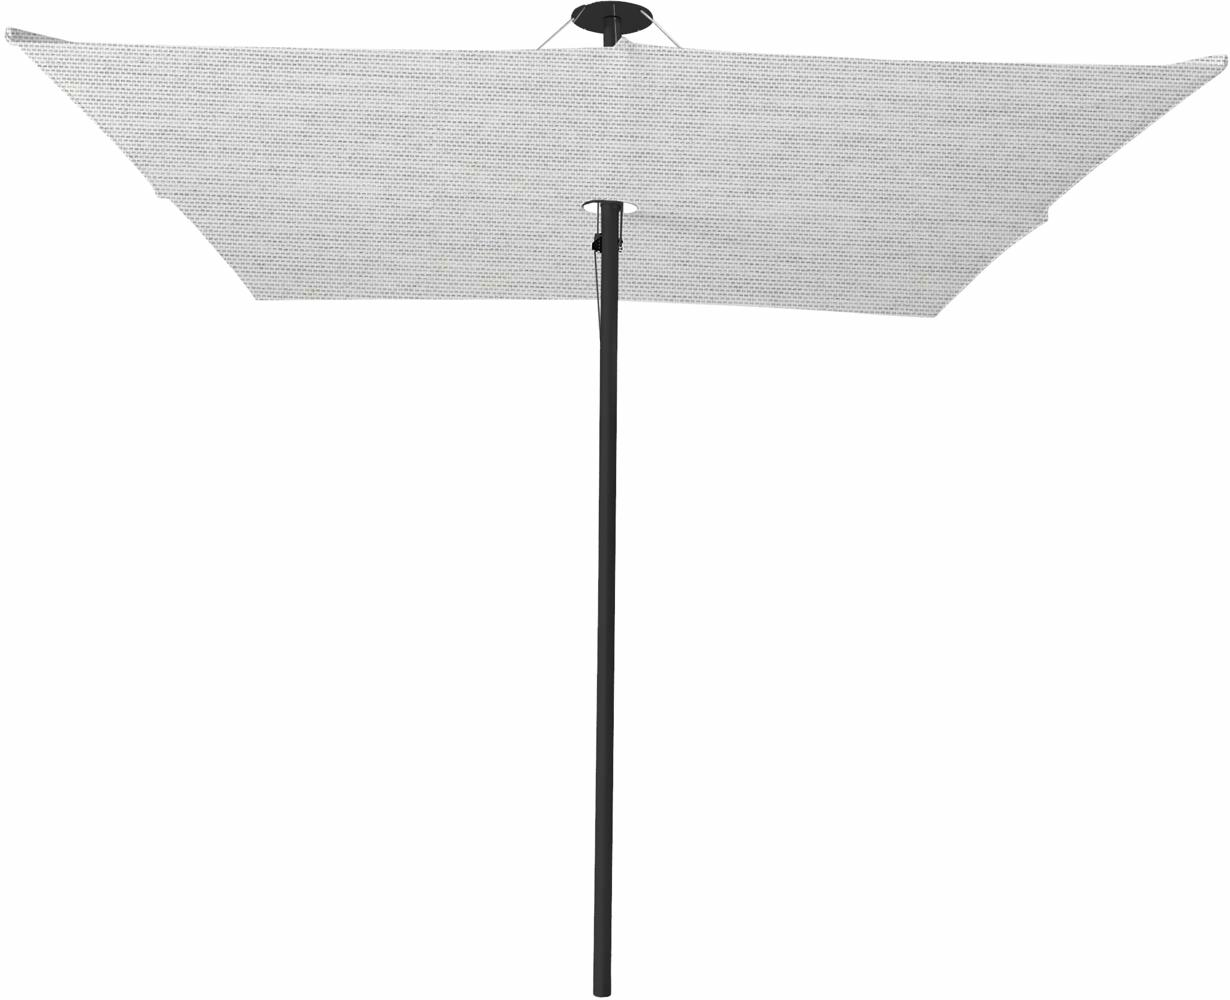 Infina center post umbrella, 2,5 m square, with frame in Dusk and Solidum Marble canopy.